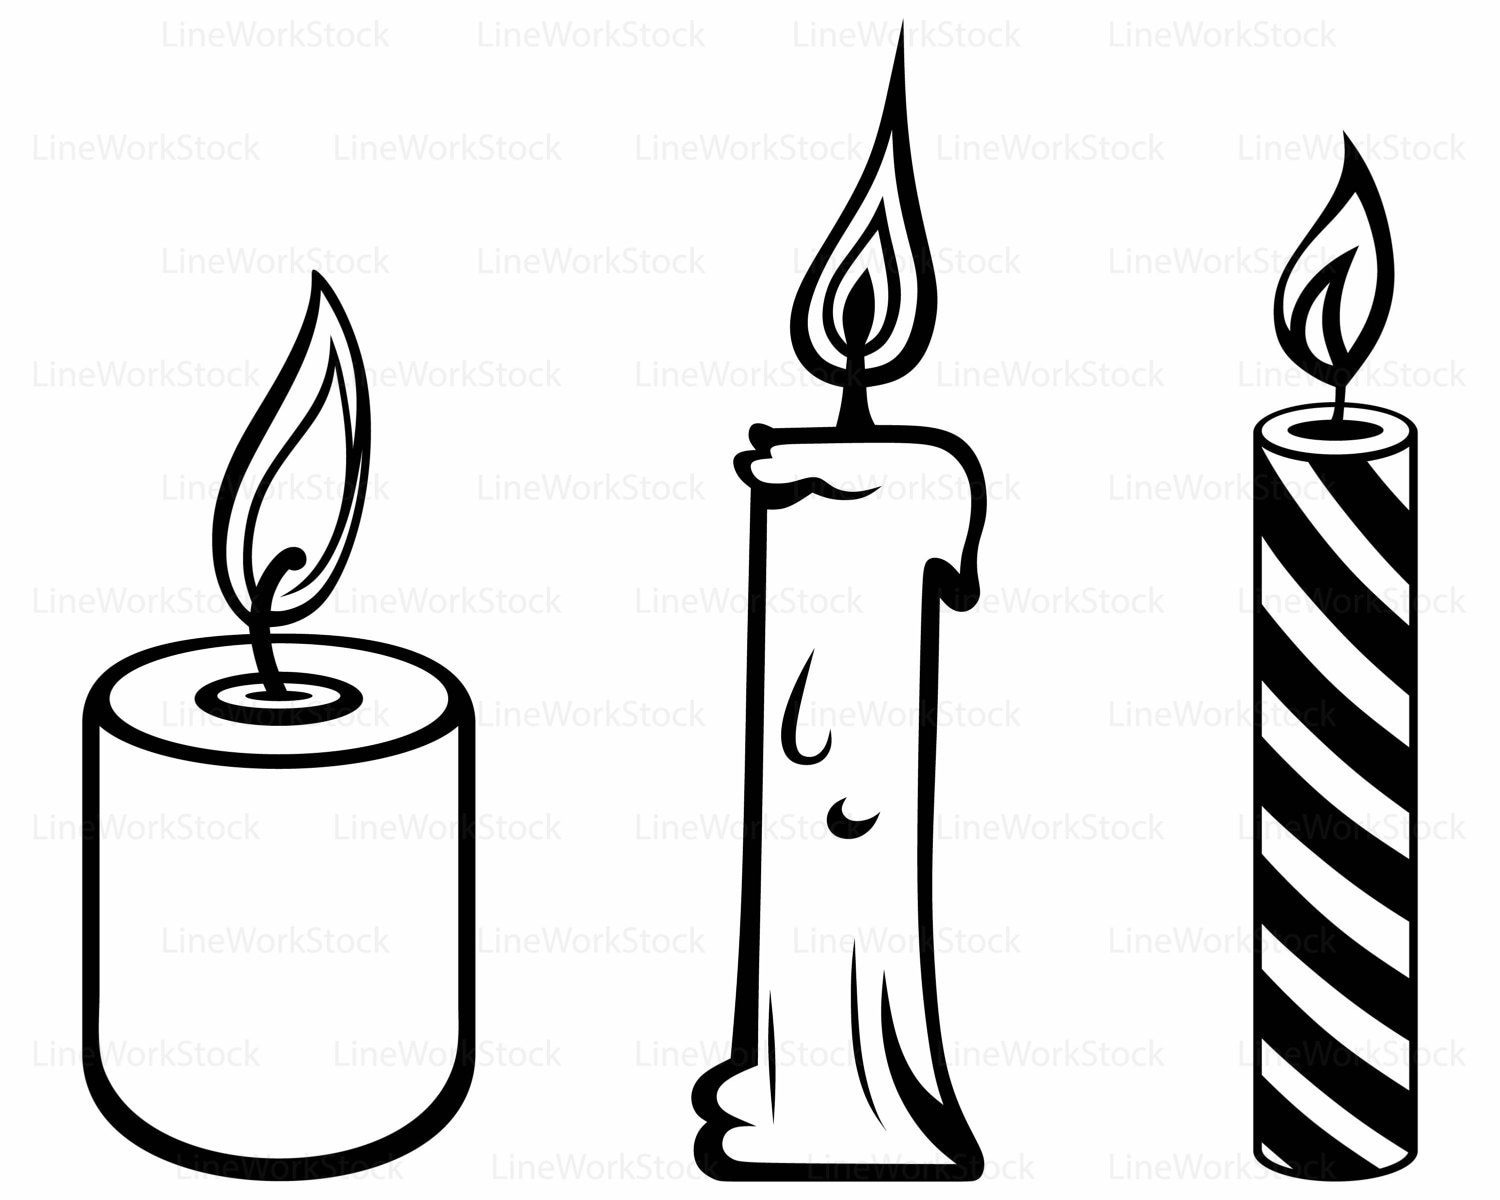 Candles svg/clipart/candle svg/candles silhouette/candle cricut cut ... for Candle Clip Art Black And White  56bof